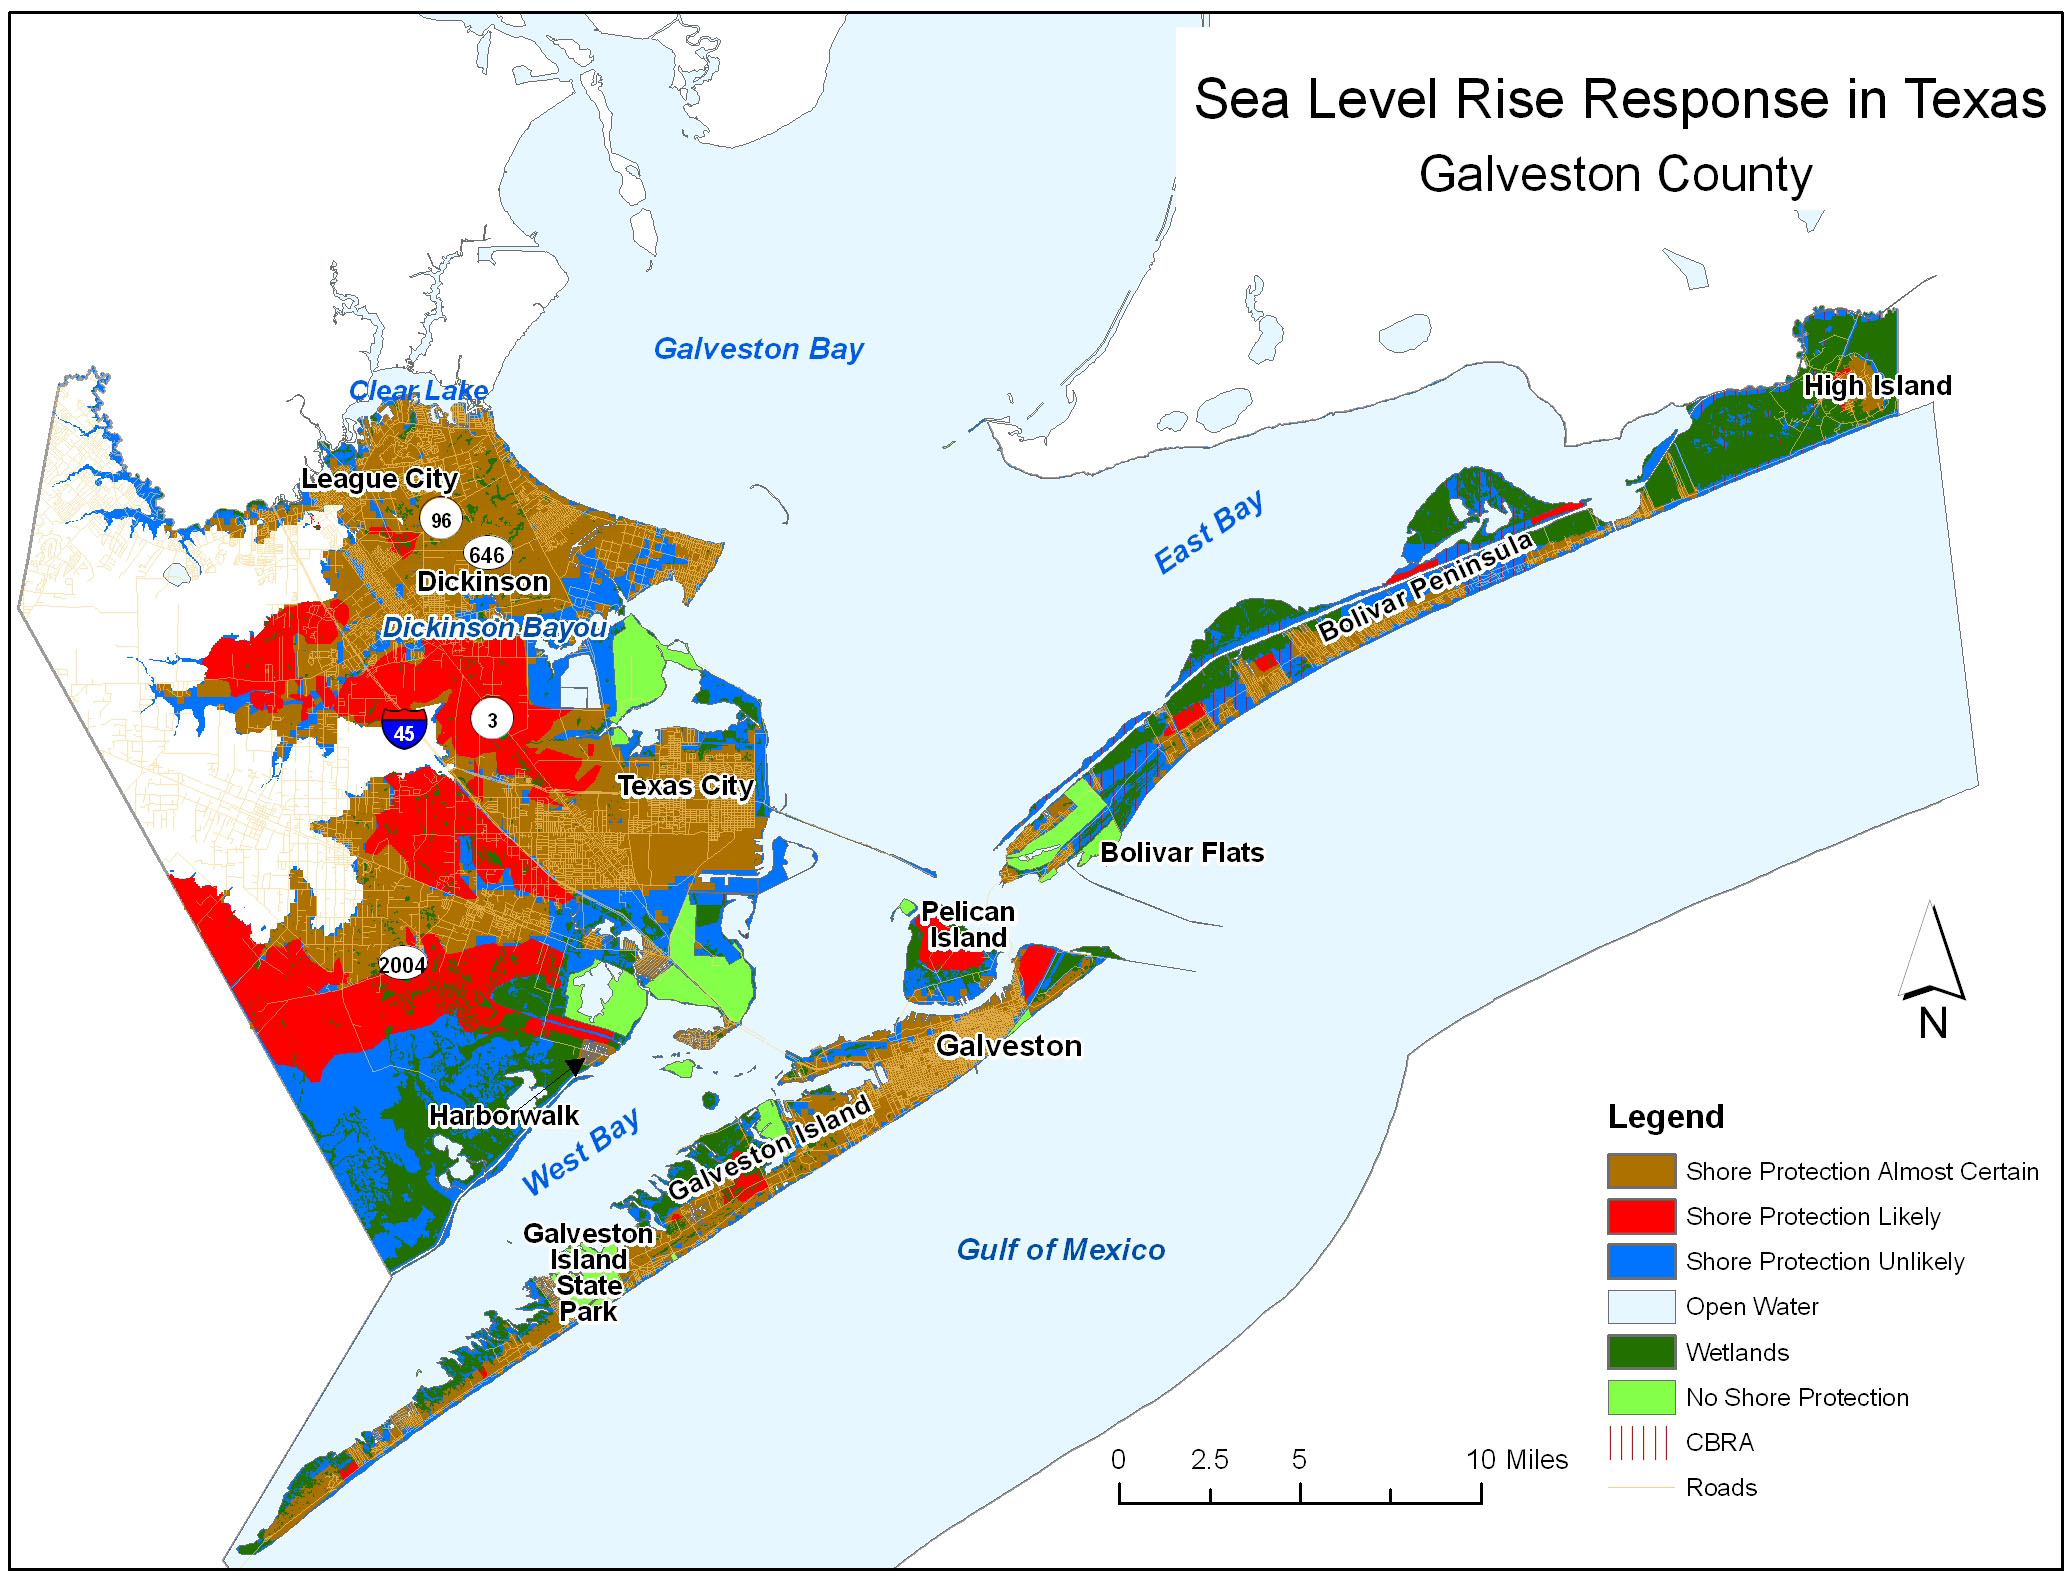 Sea Level Rise Planning Maps Likelihood Of Shore Protection In - Map of texas cities and counties